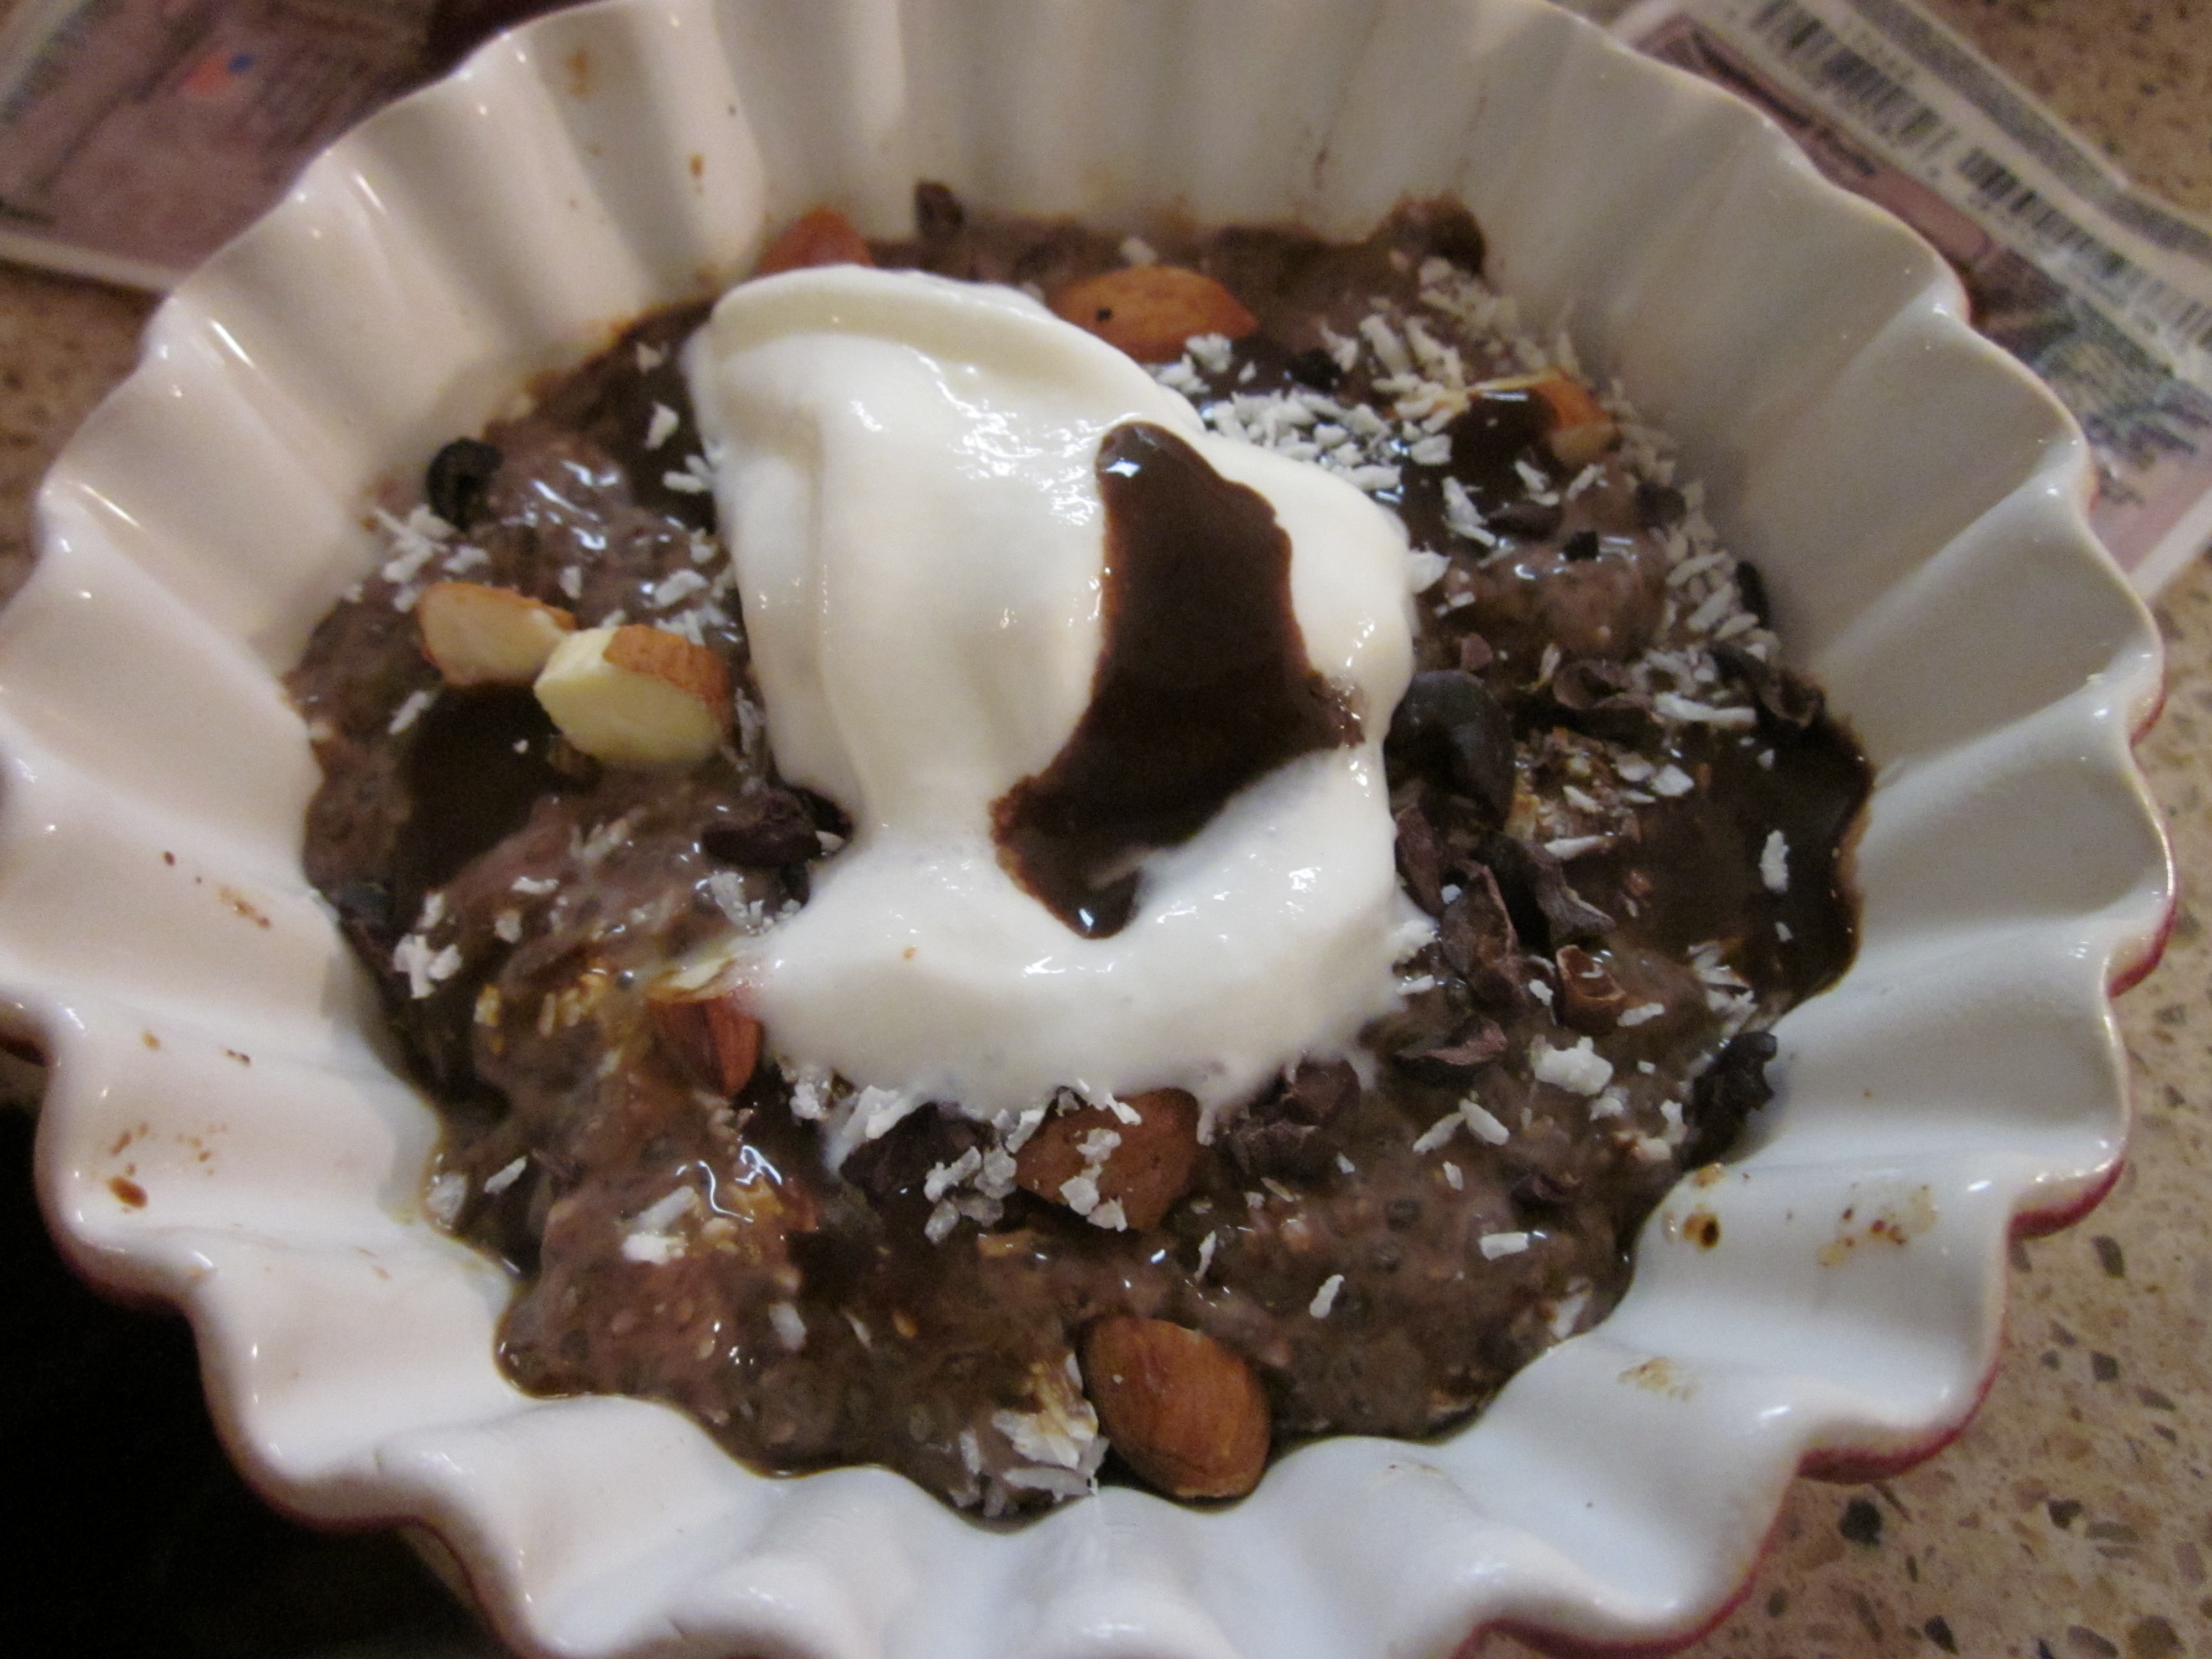 ... Pudding, with coconut milk, almonds, coconut flakes, chocolate